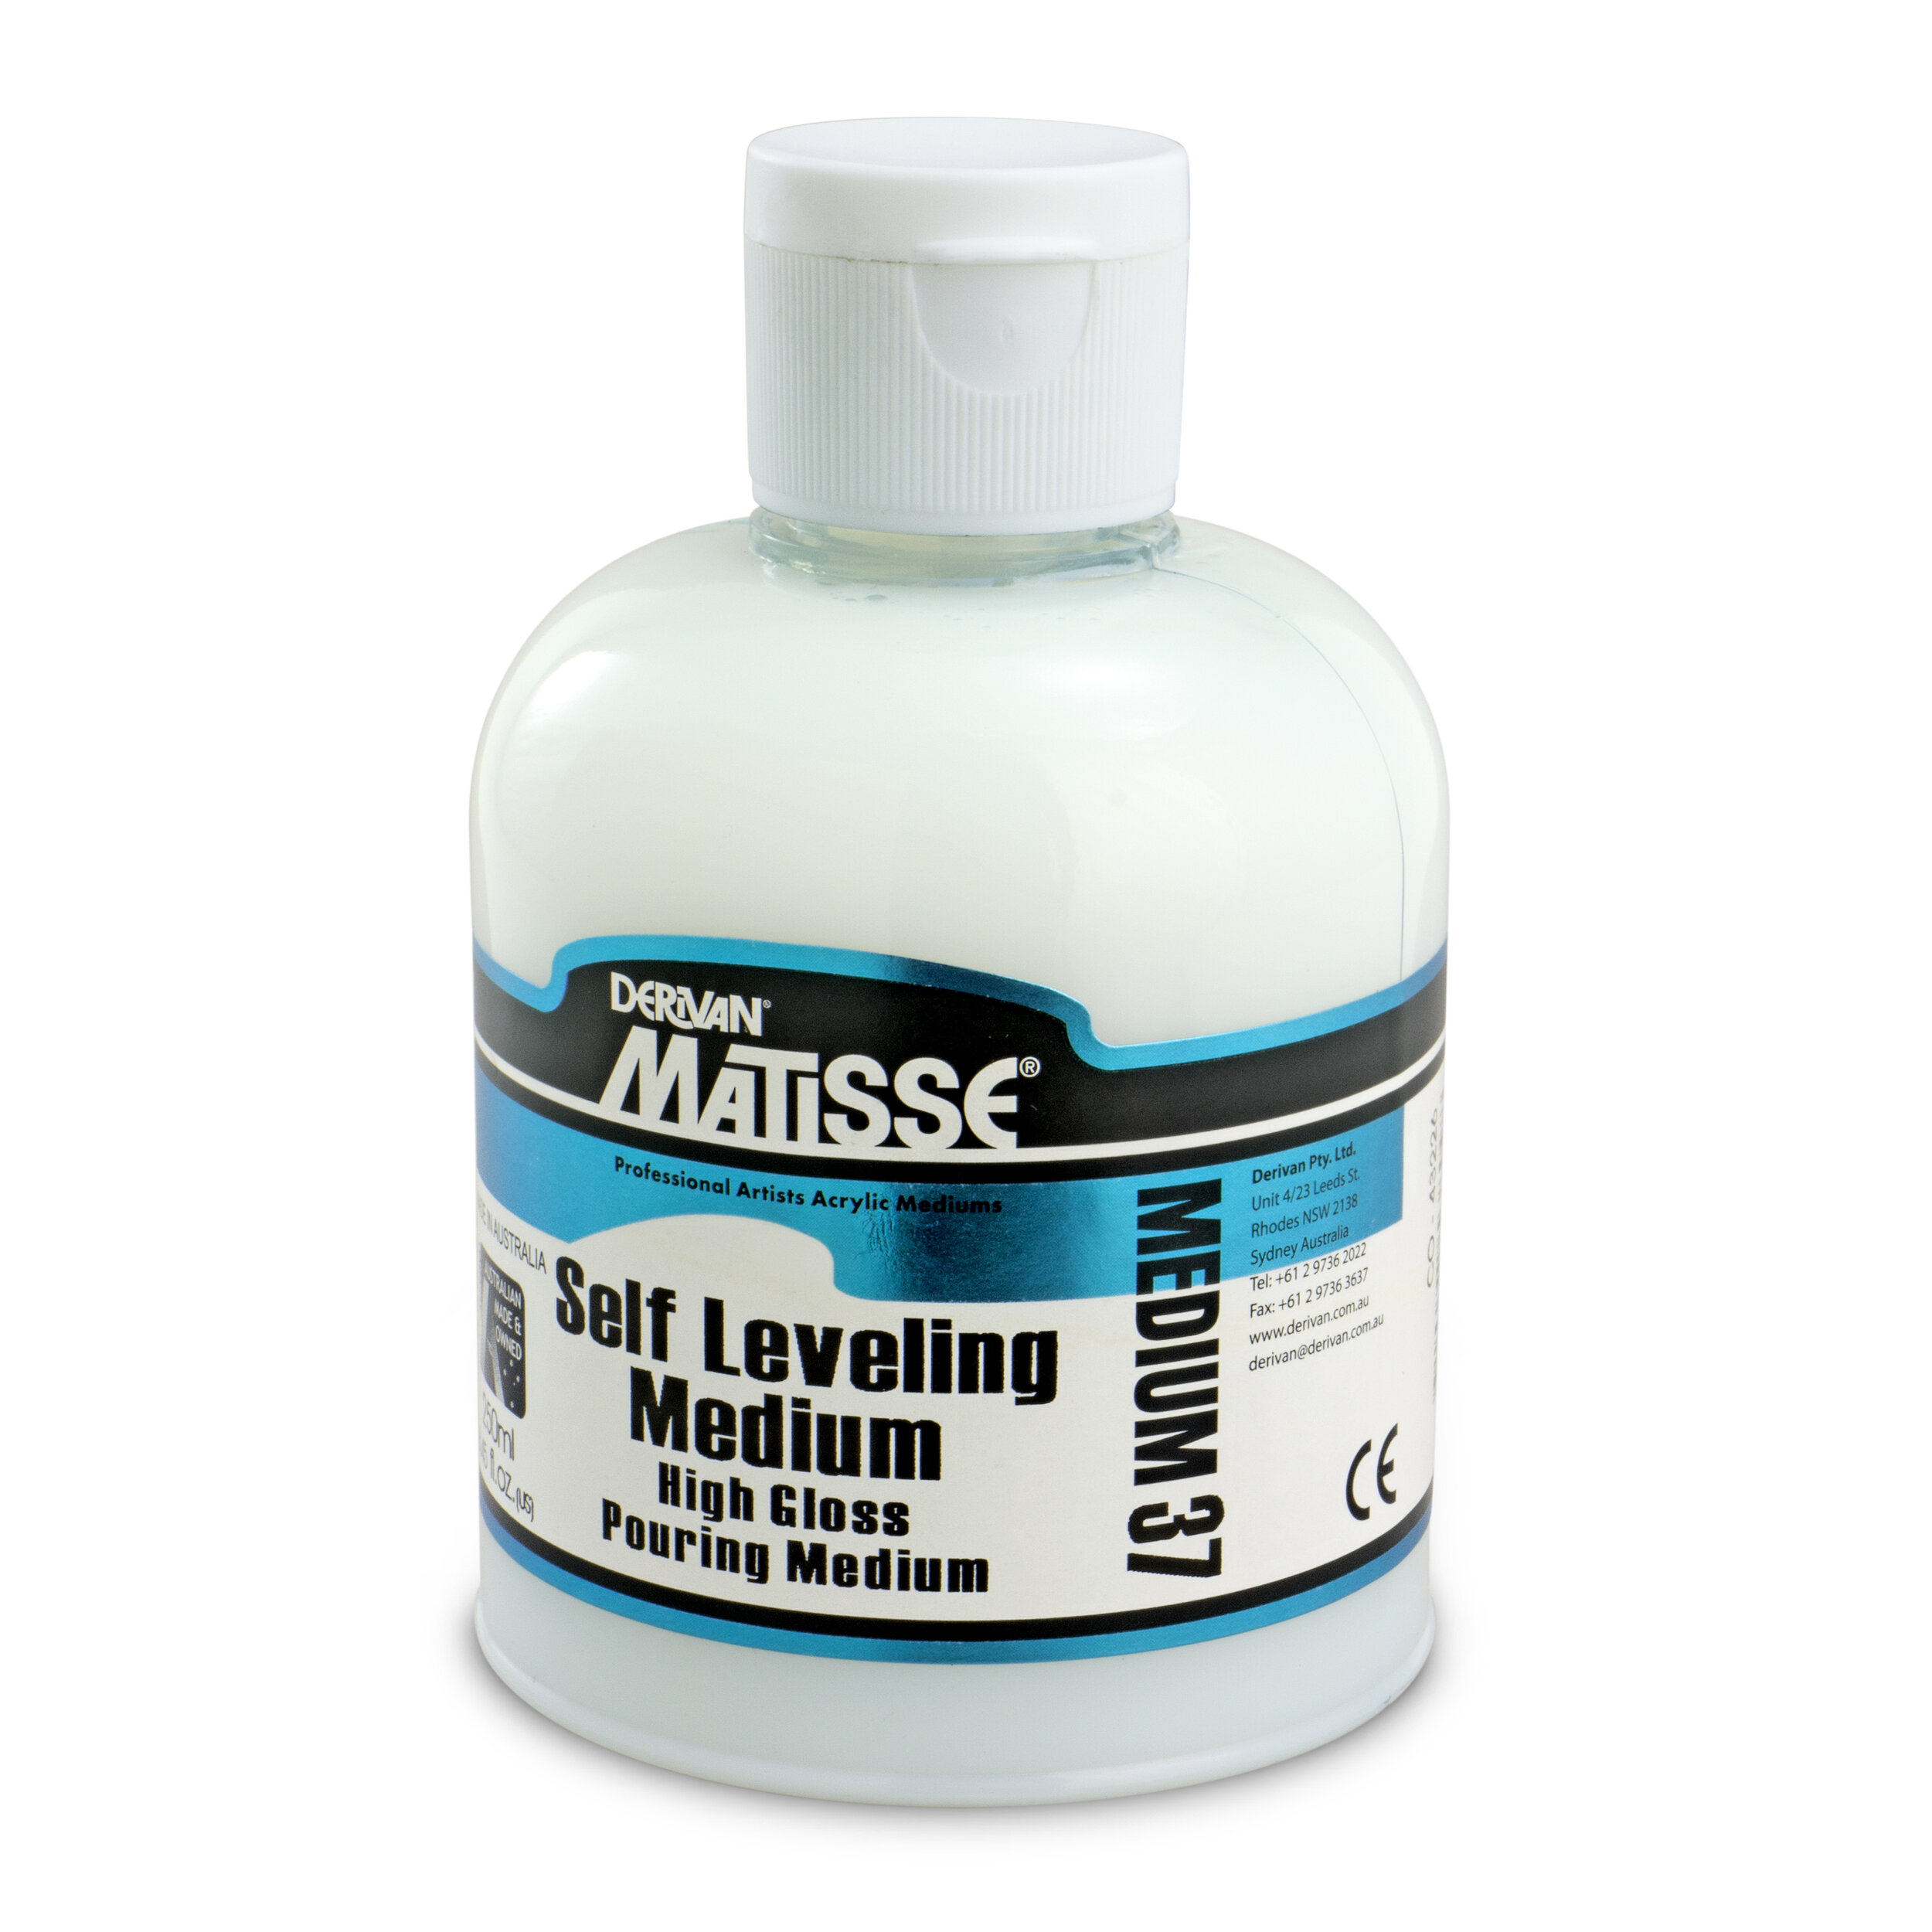 MM37 Self Leveling Medium - ———————Additive that creates smooth, glossy finishes with minimal surface texture.